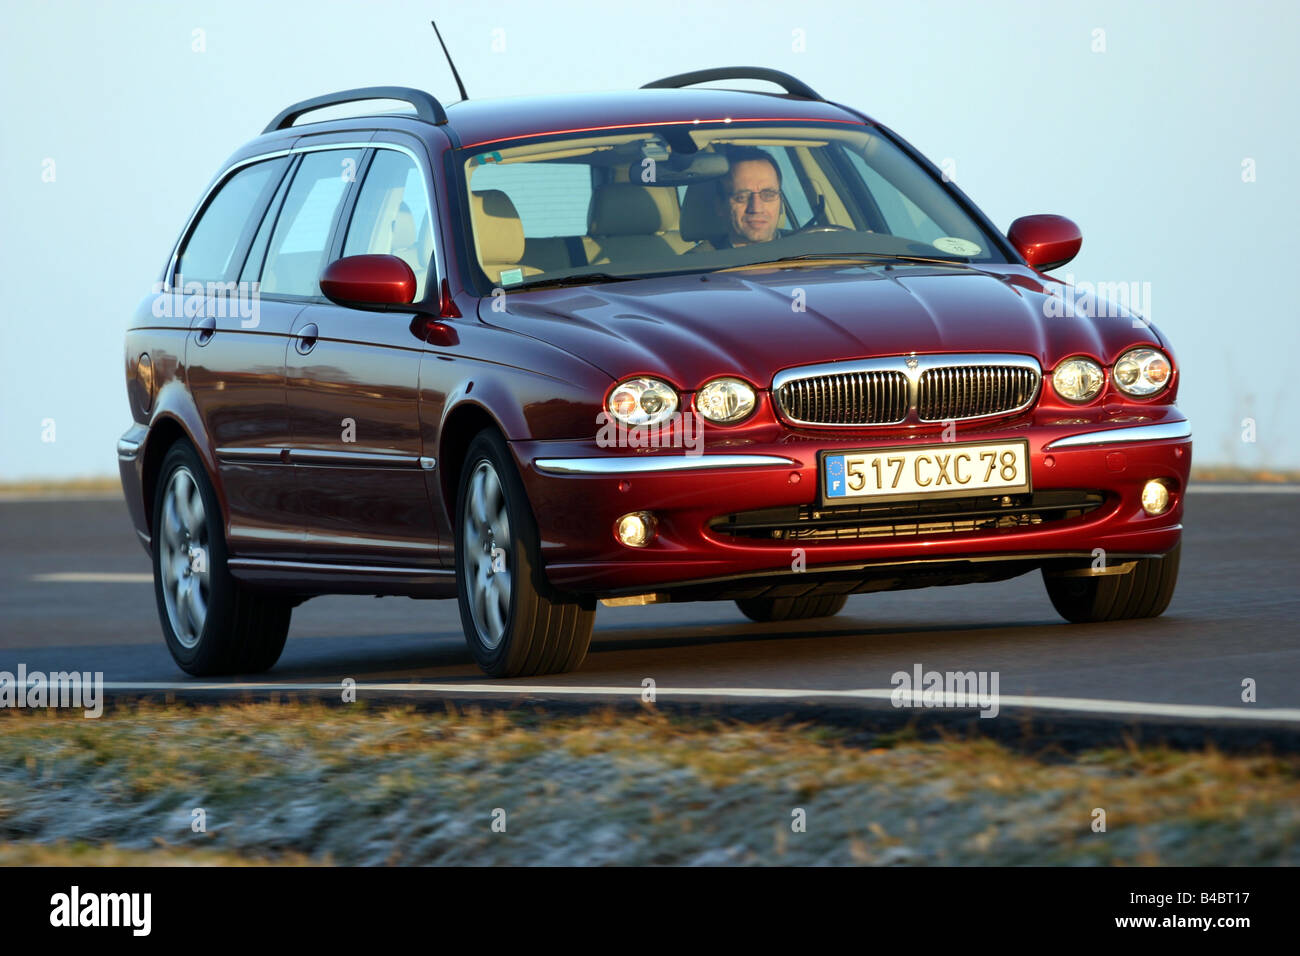 car jaguar x type estate 2 0 d model year 2004 medium class stock photo royalty free image. Black Bedroom Furniture Sets. Home Design Ideas